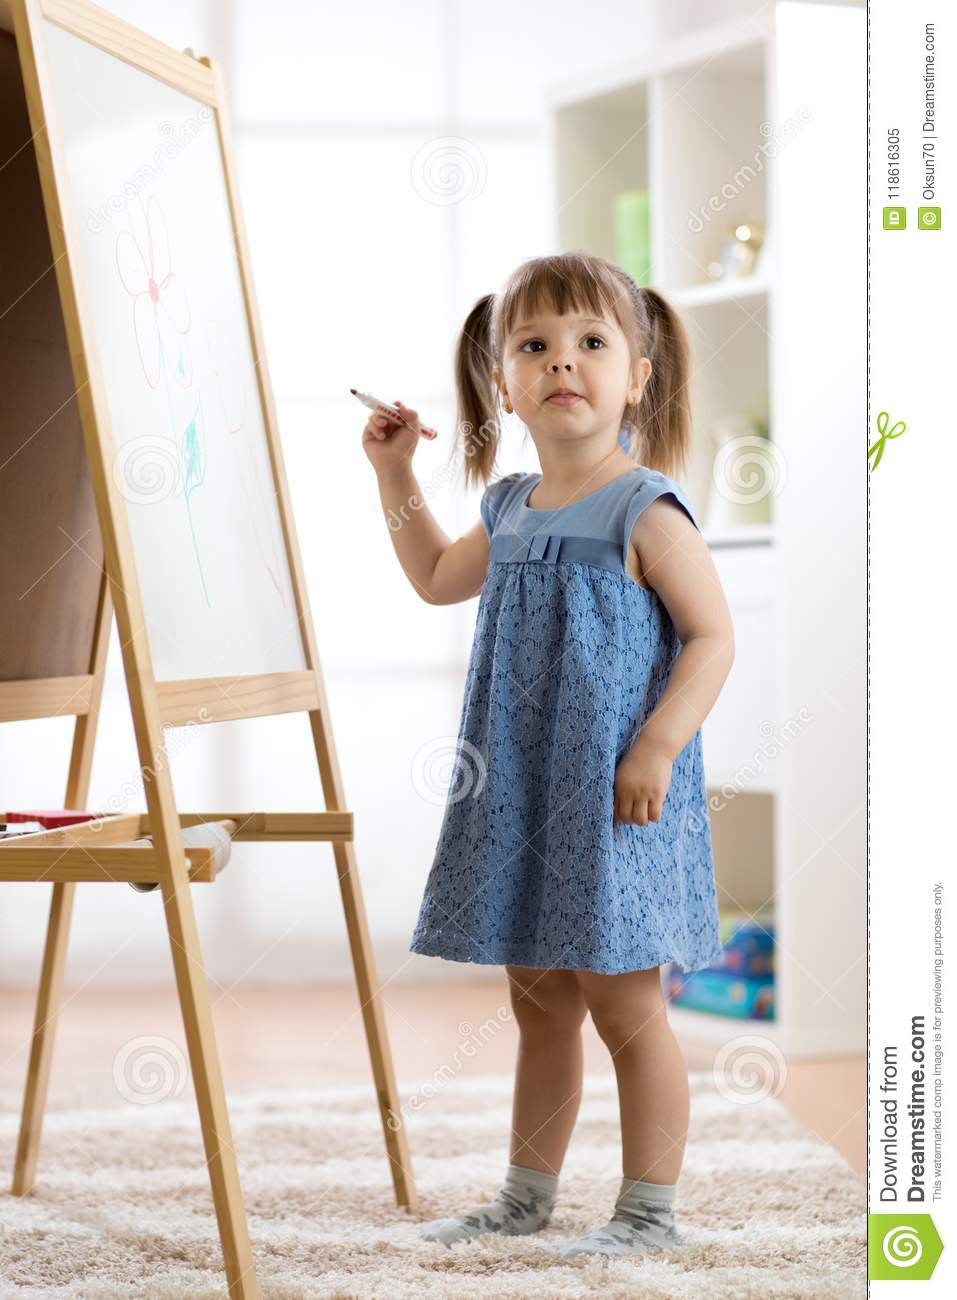 Happy cute toddler girl drawing or writting with marker pen on a blank whiteboard at home, preschool, daycare or